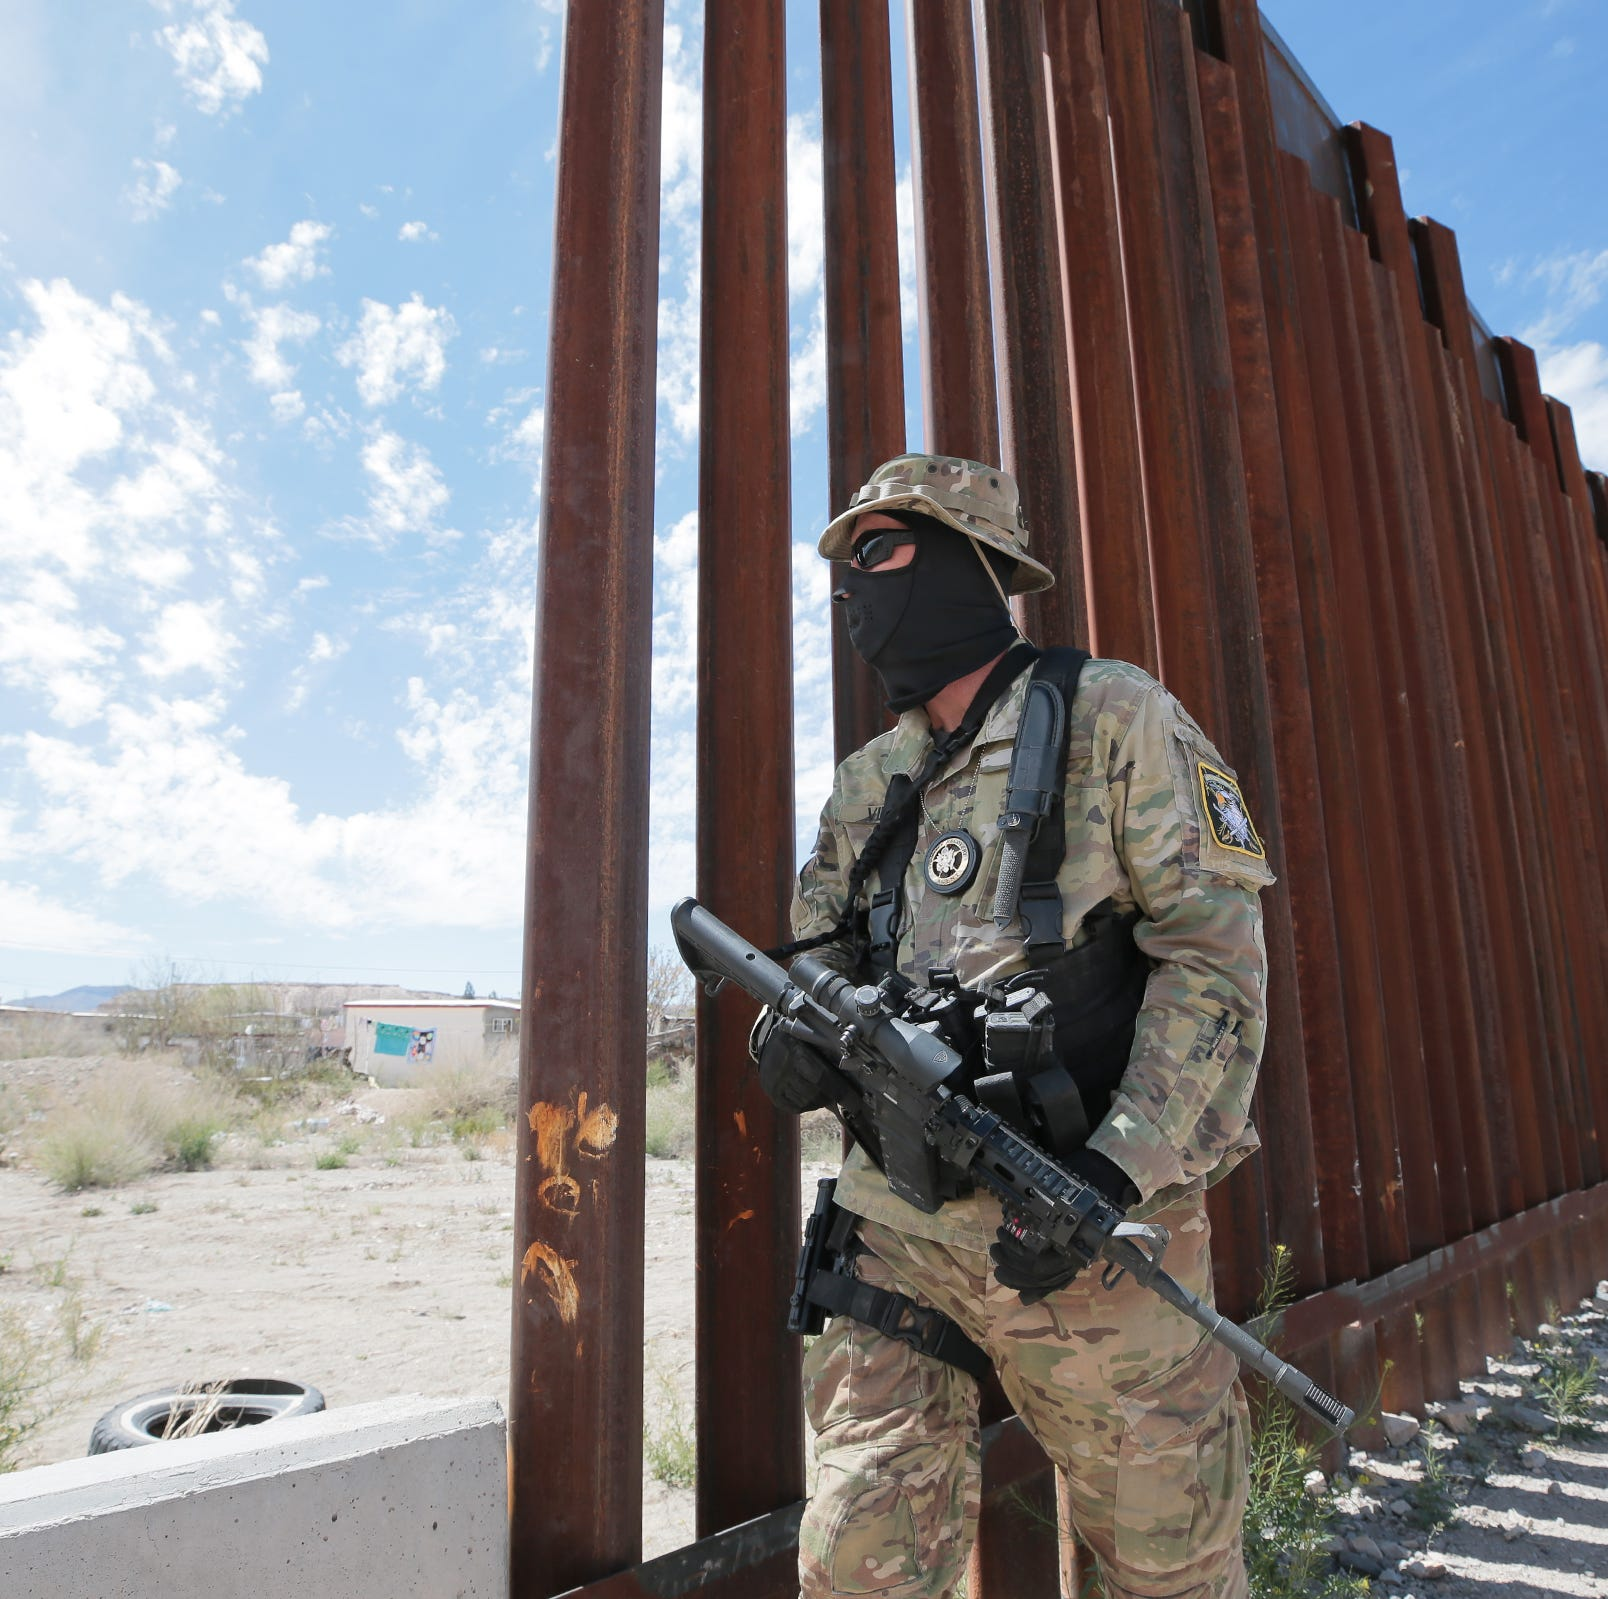 Armed civilians are detaining migrants at the border. The ACLU wants them investigated.